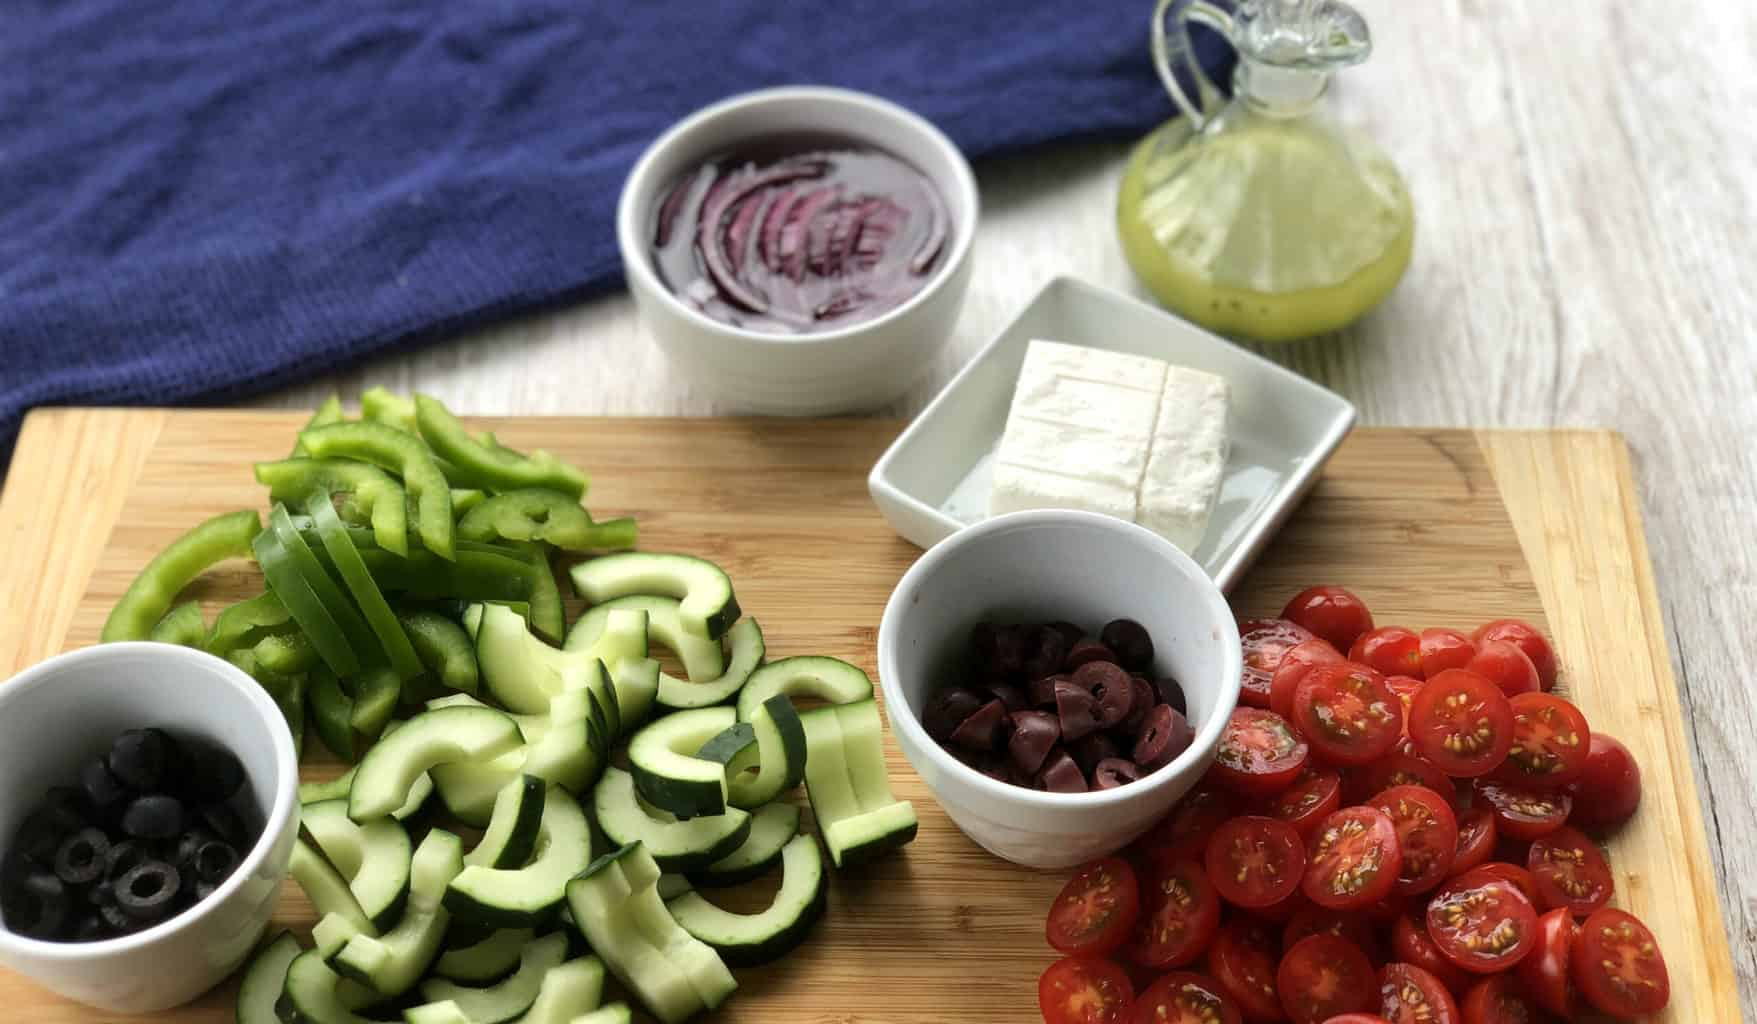 Prepare the ingredients before combining the salad